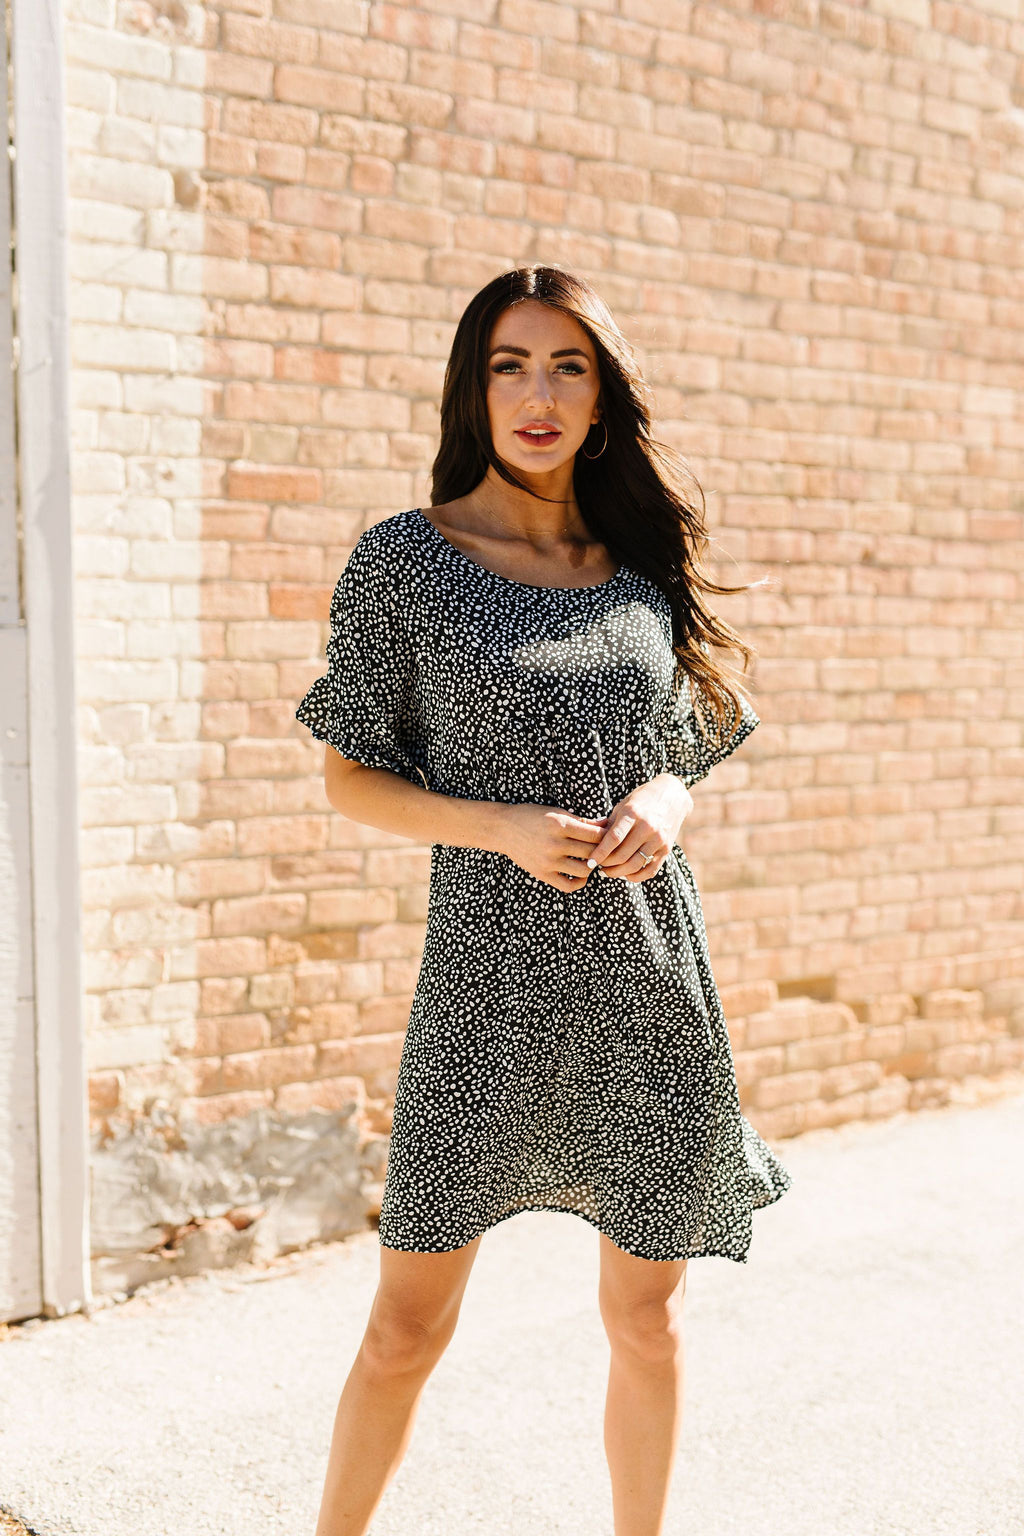 Mini Spots Ruffle Sleeve Dress-1XL, 2XL, 8-27-2020, BFCM2020, Dresses, Group A, Group B, Group C, Group D, Group T, Large, Medium, Plus, Small, Warehouse Sale, XL-Womens Artisan USA American Made Clothing Accessories